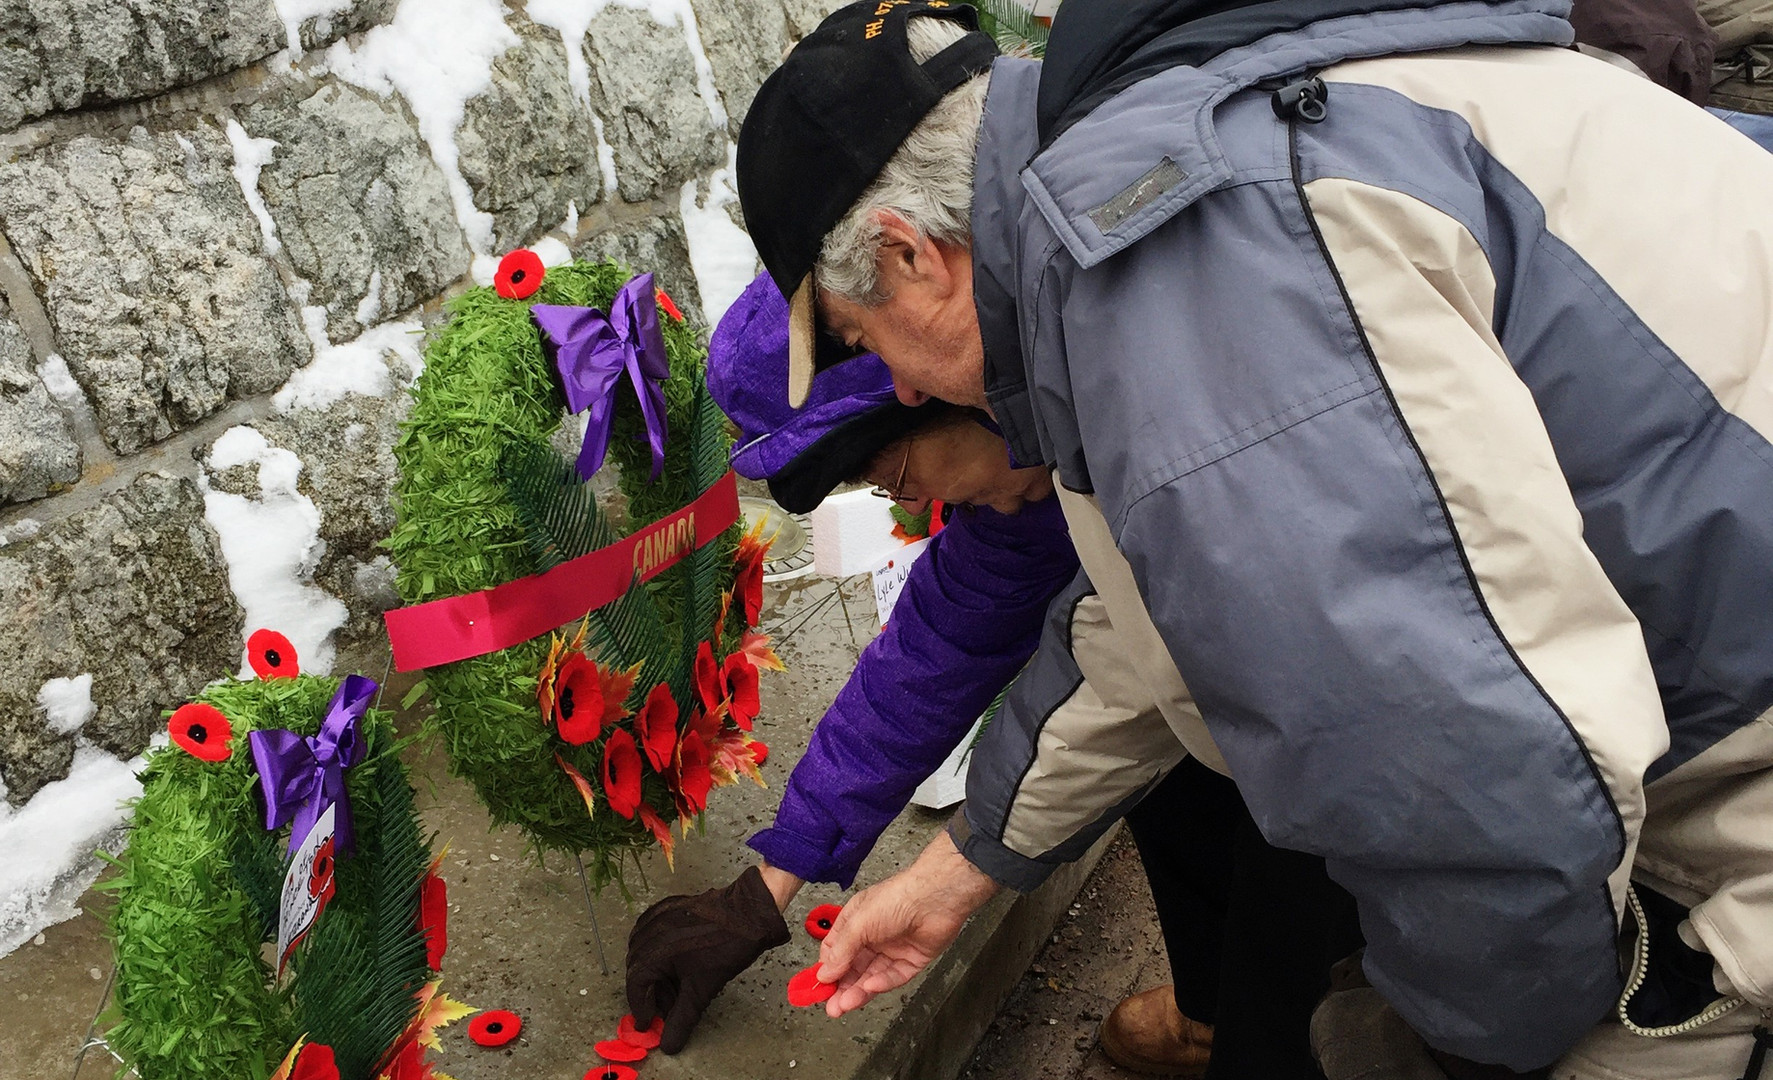 Laying Poppies at the Cenotaph